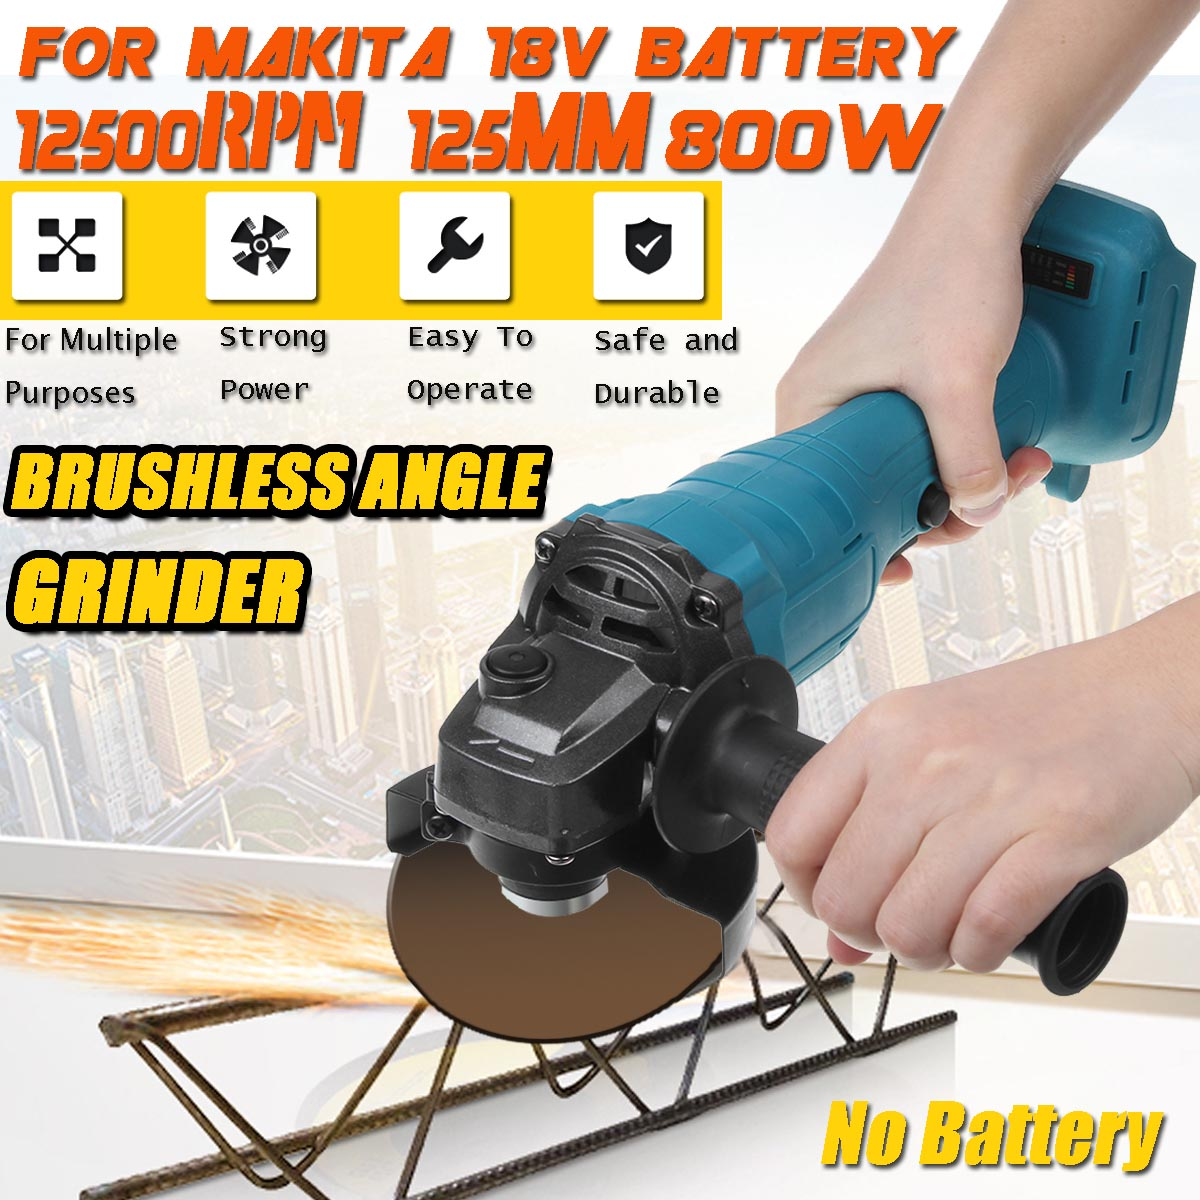 800W 125mm Brushless Cordless Electric Angle Grinder Variable Speed 12500 rpm Power Tool Cutting Machine For Makita 18V Battery